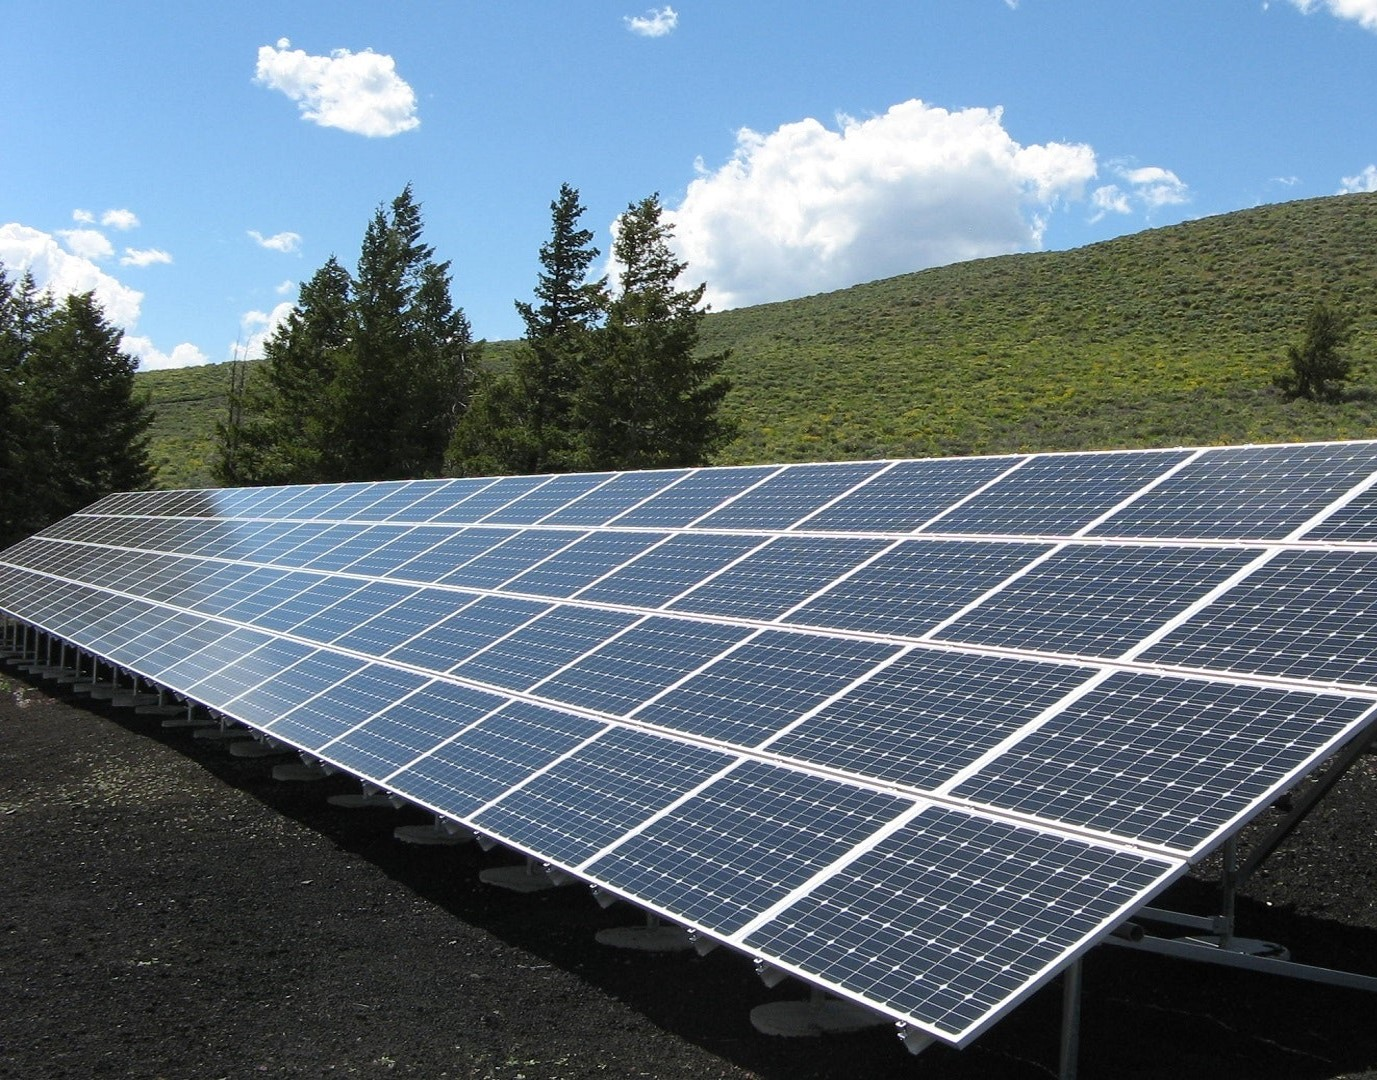 Ledax looks at Distributed Generation market and projects to bill $ 8 million in 2019